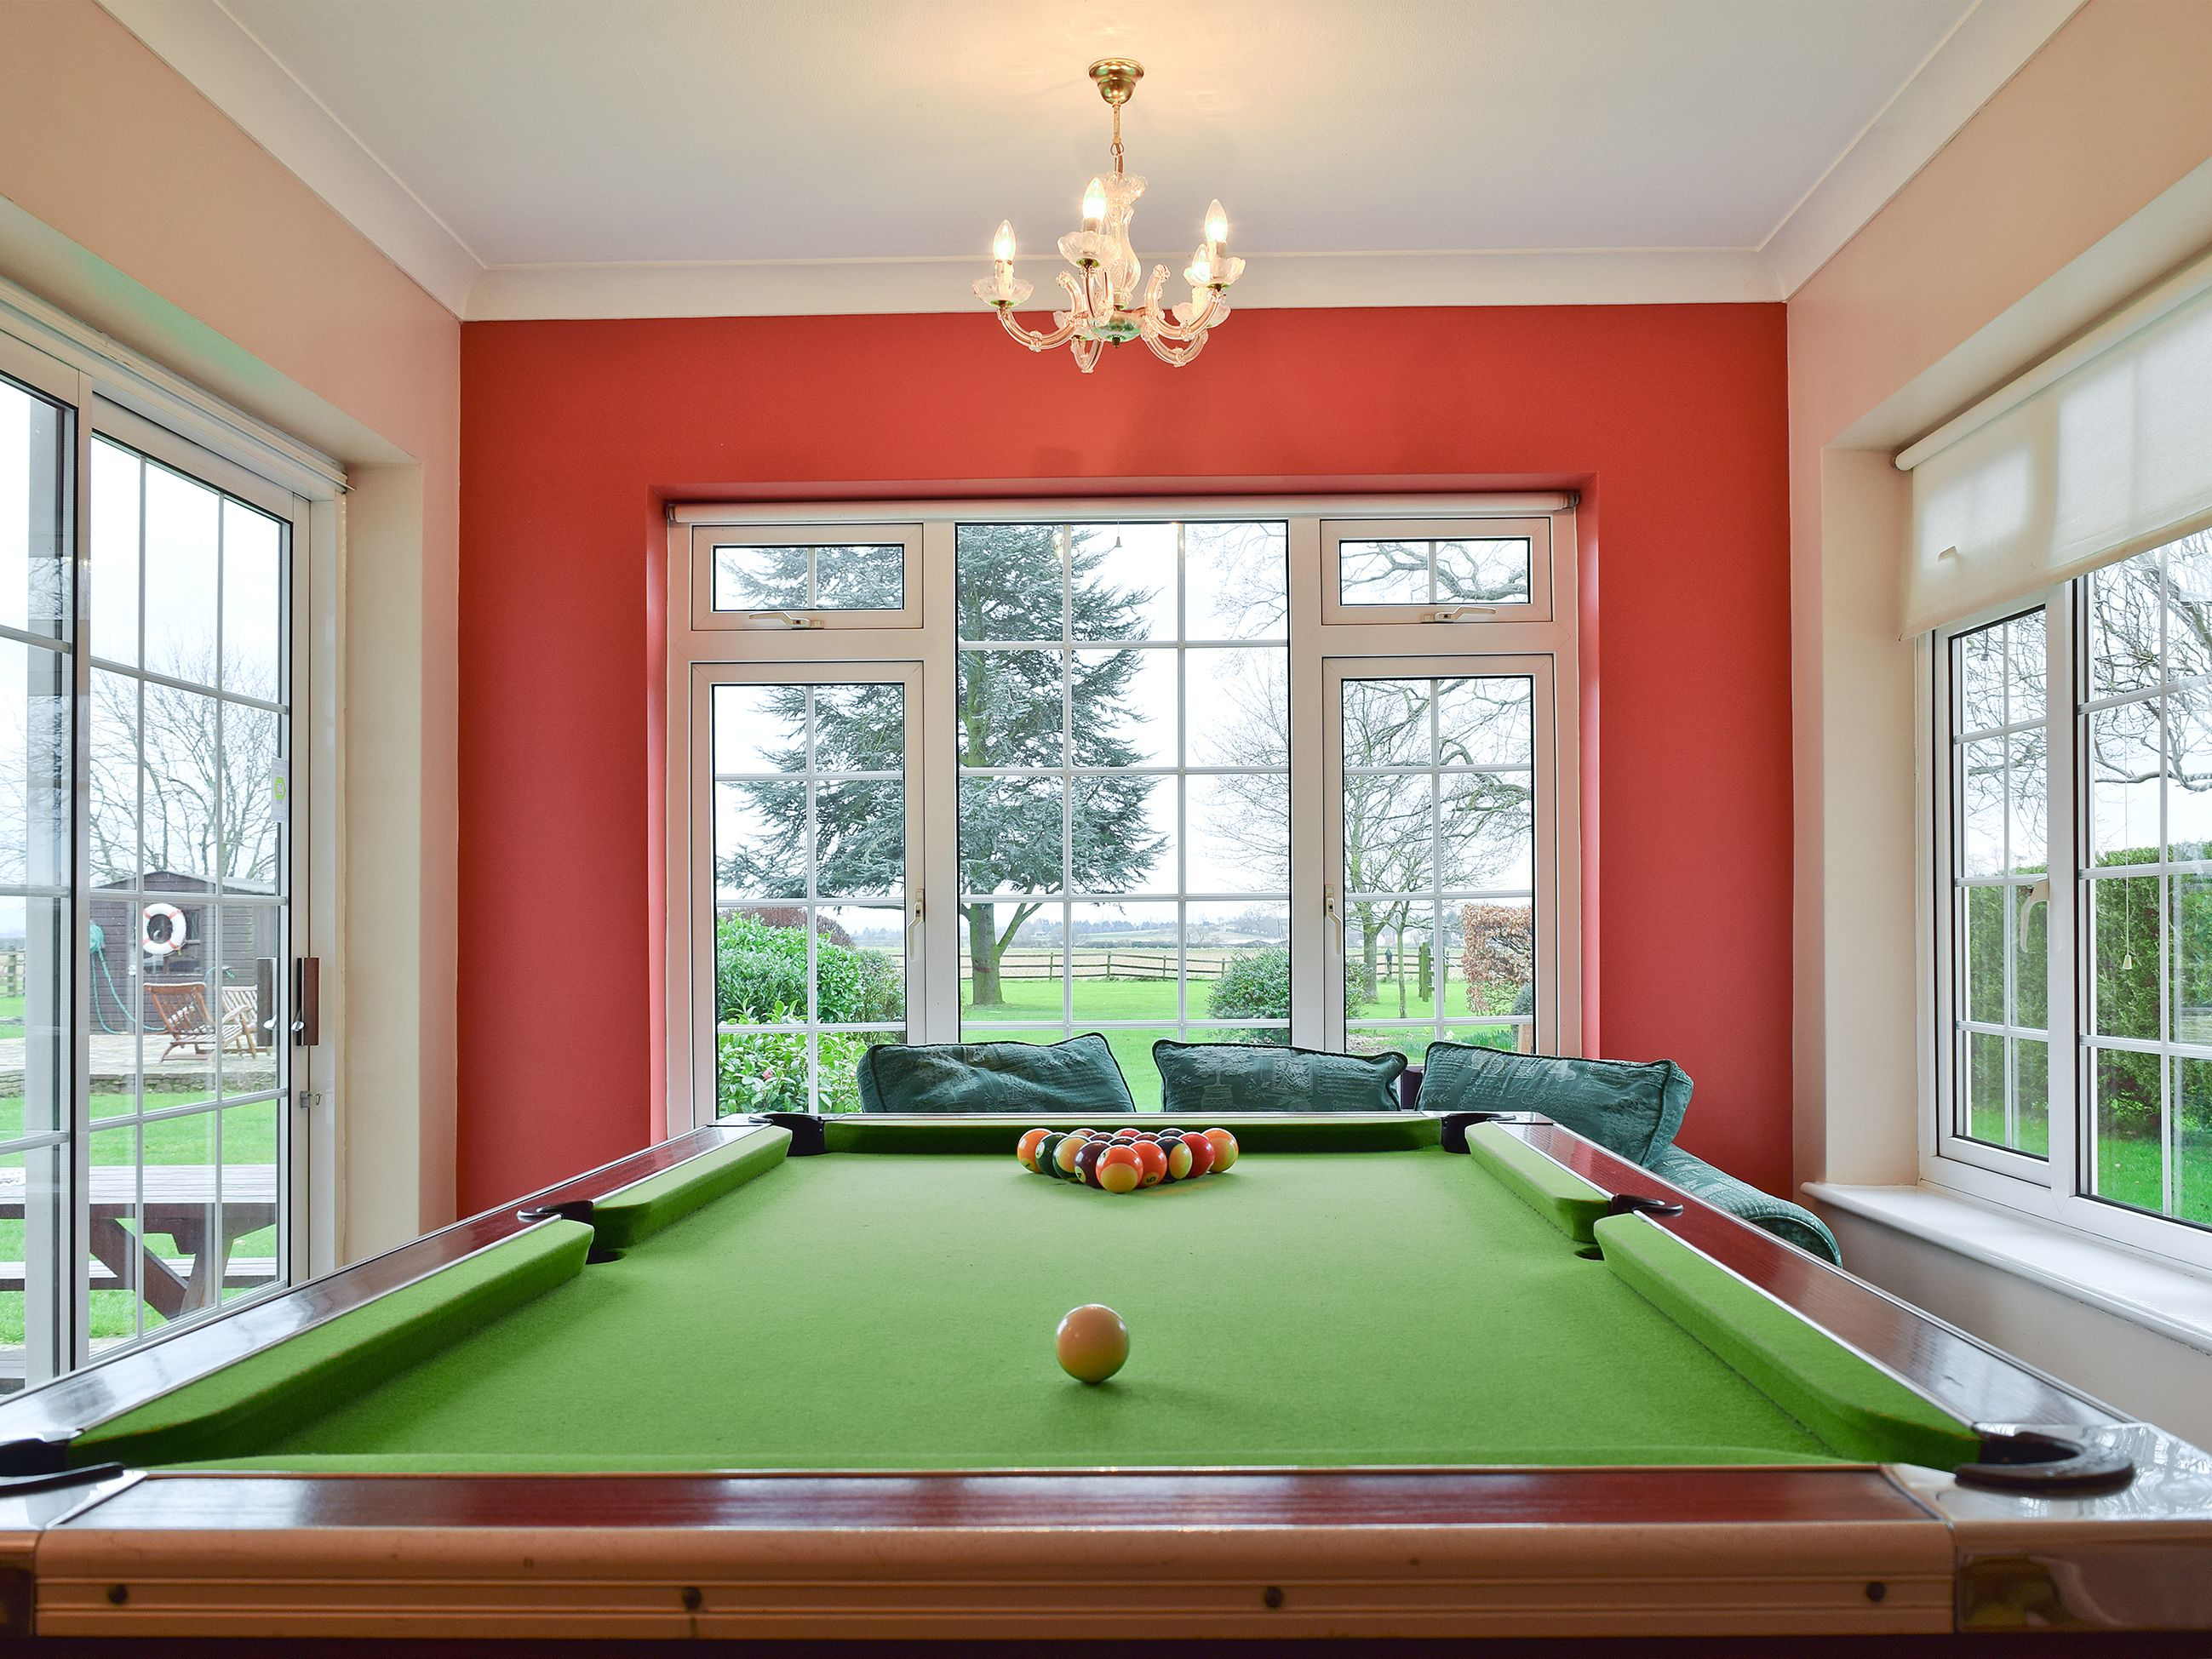 Enjoy The Fullsize Pool Table In The Games Room Ideal For Groups - Ideal room size for pool table